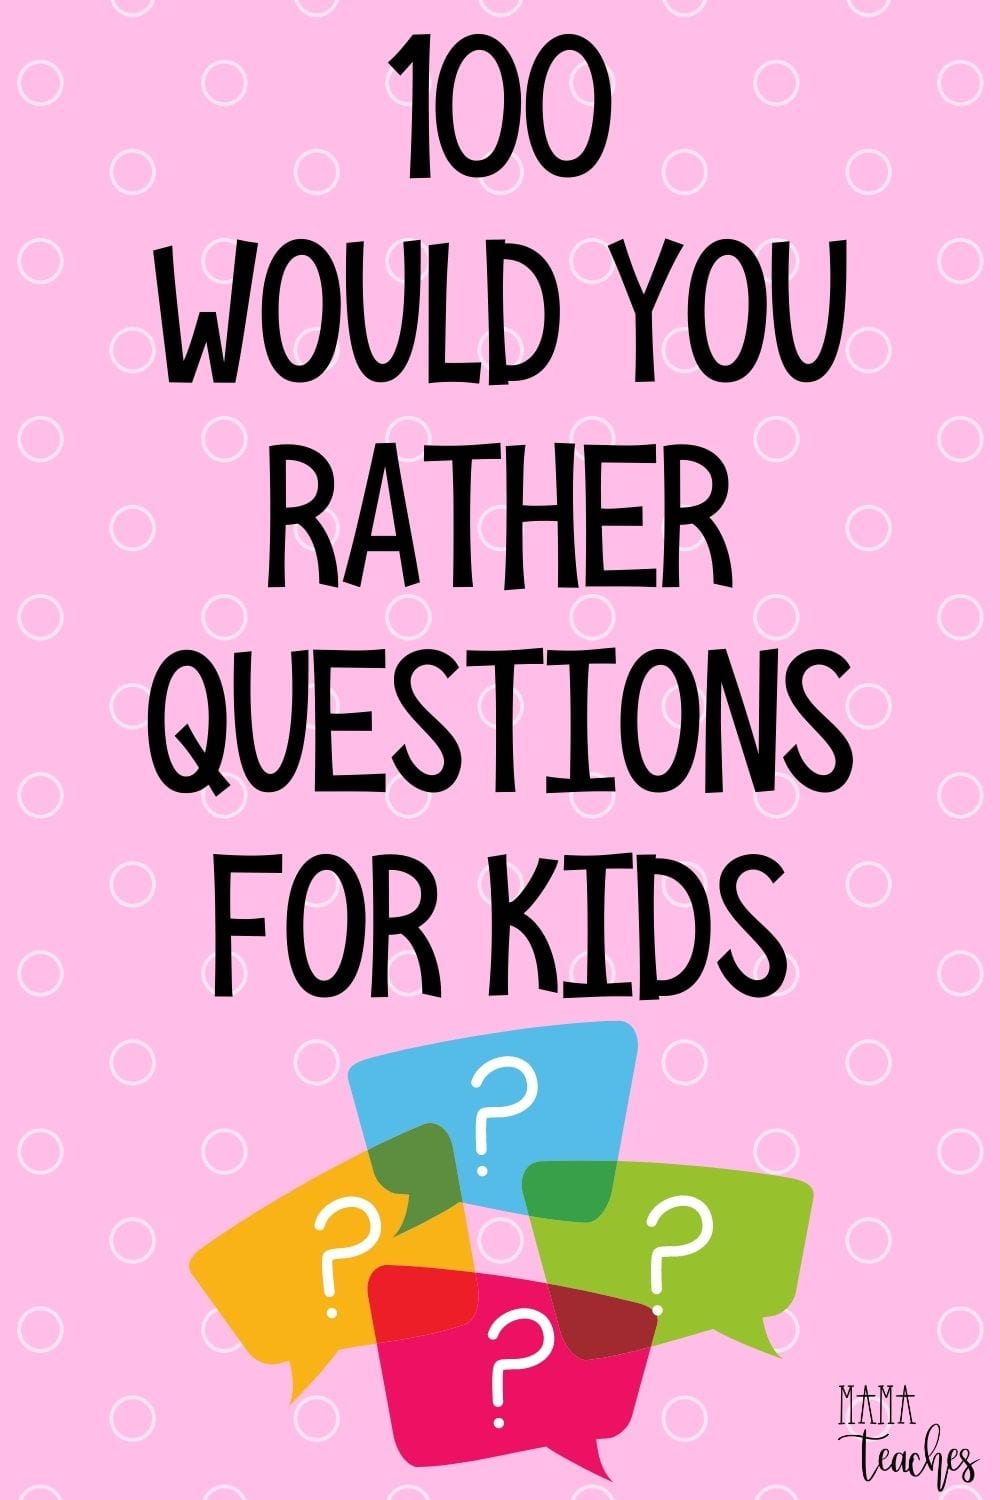 100 Would You Rather Questions for Kids for the Classroom